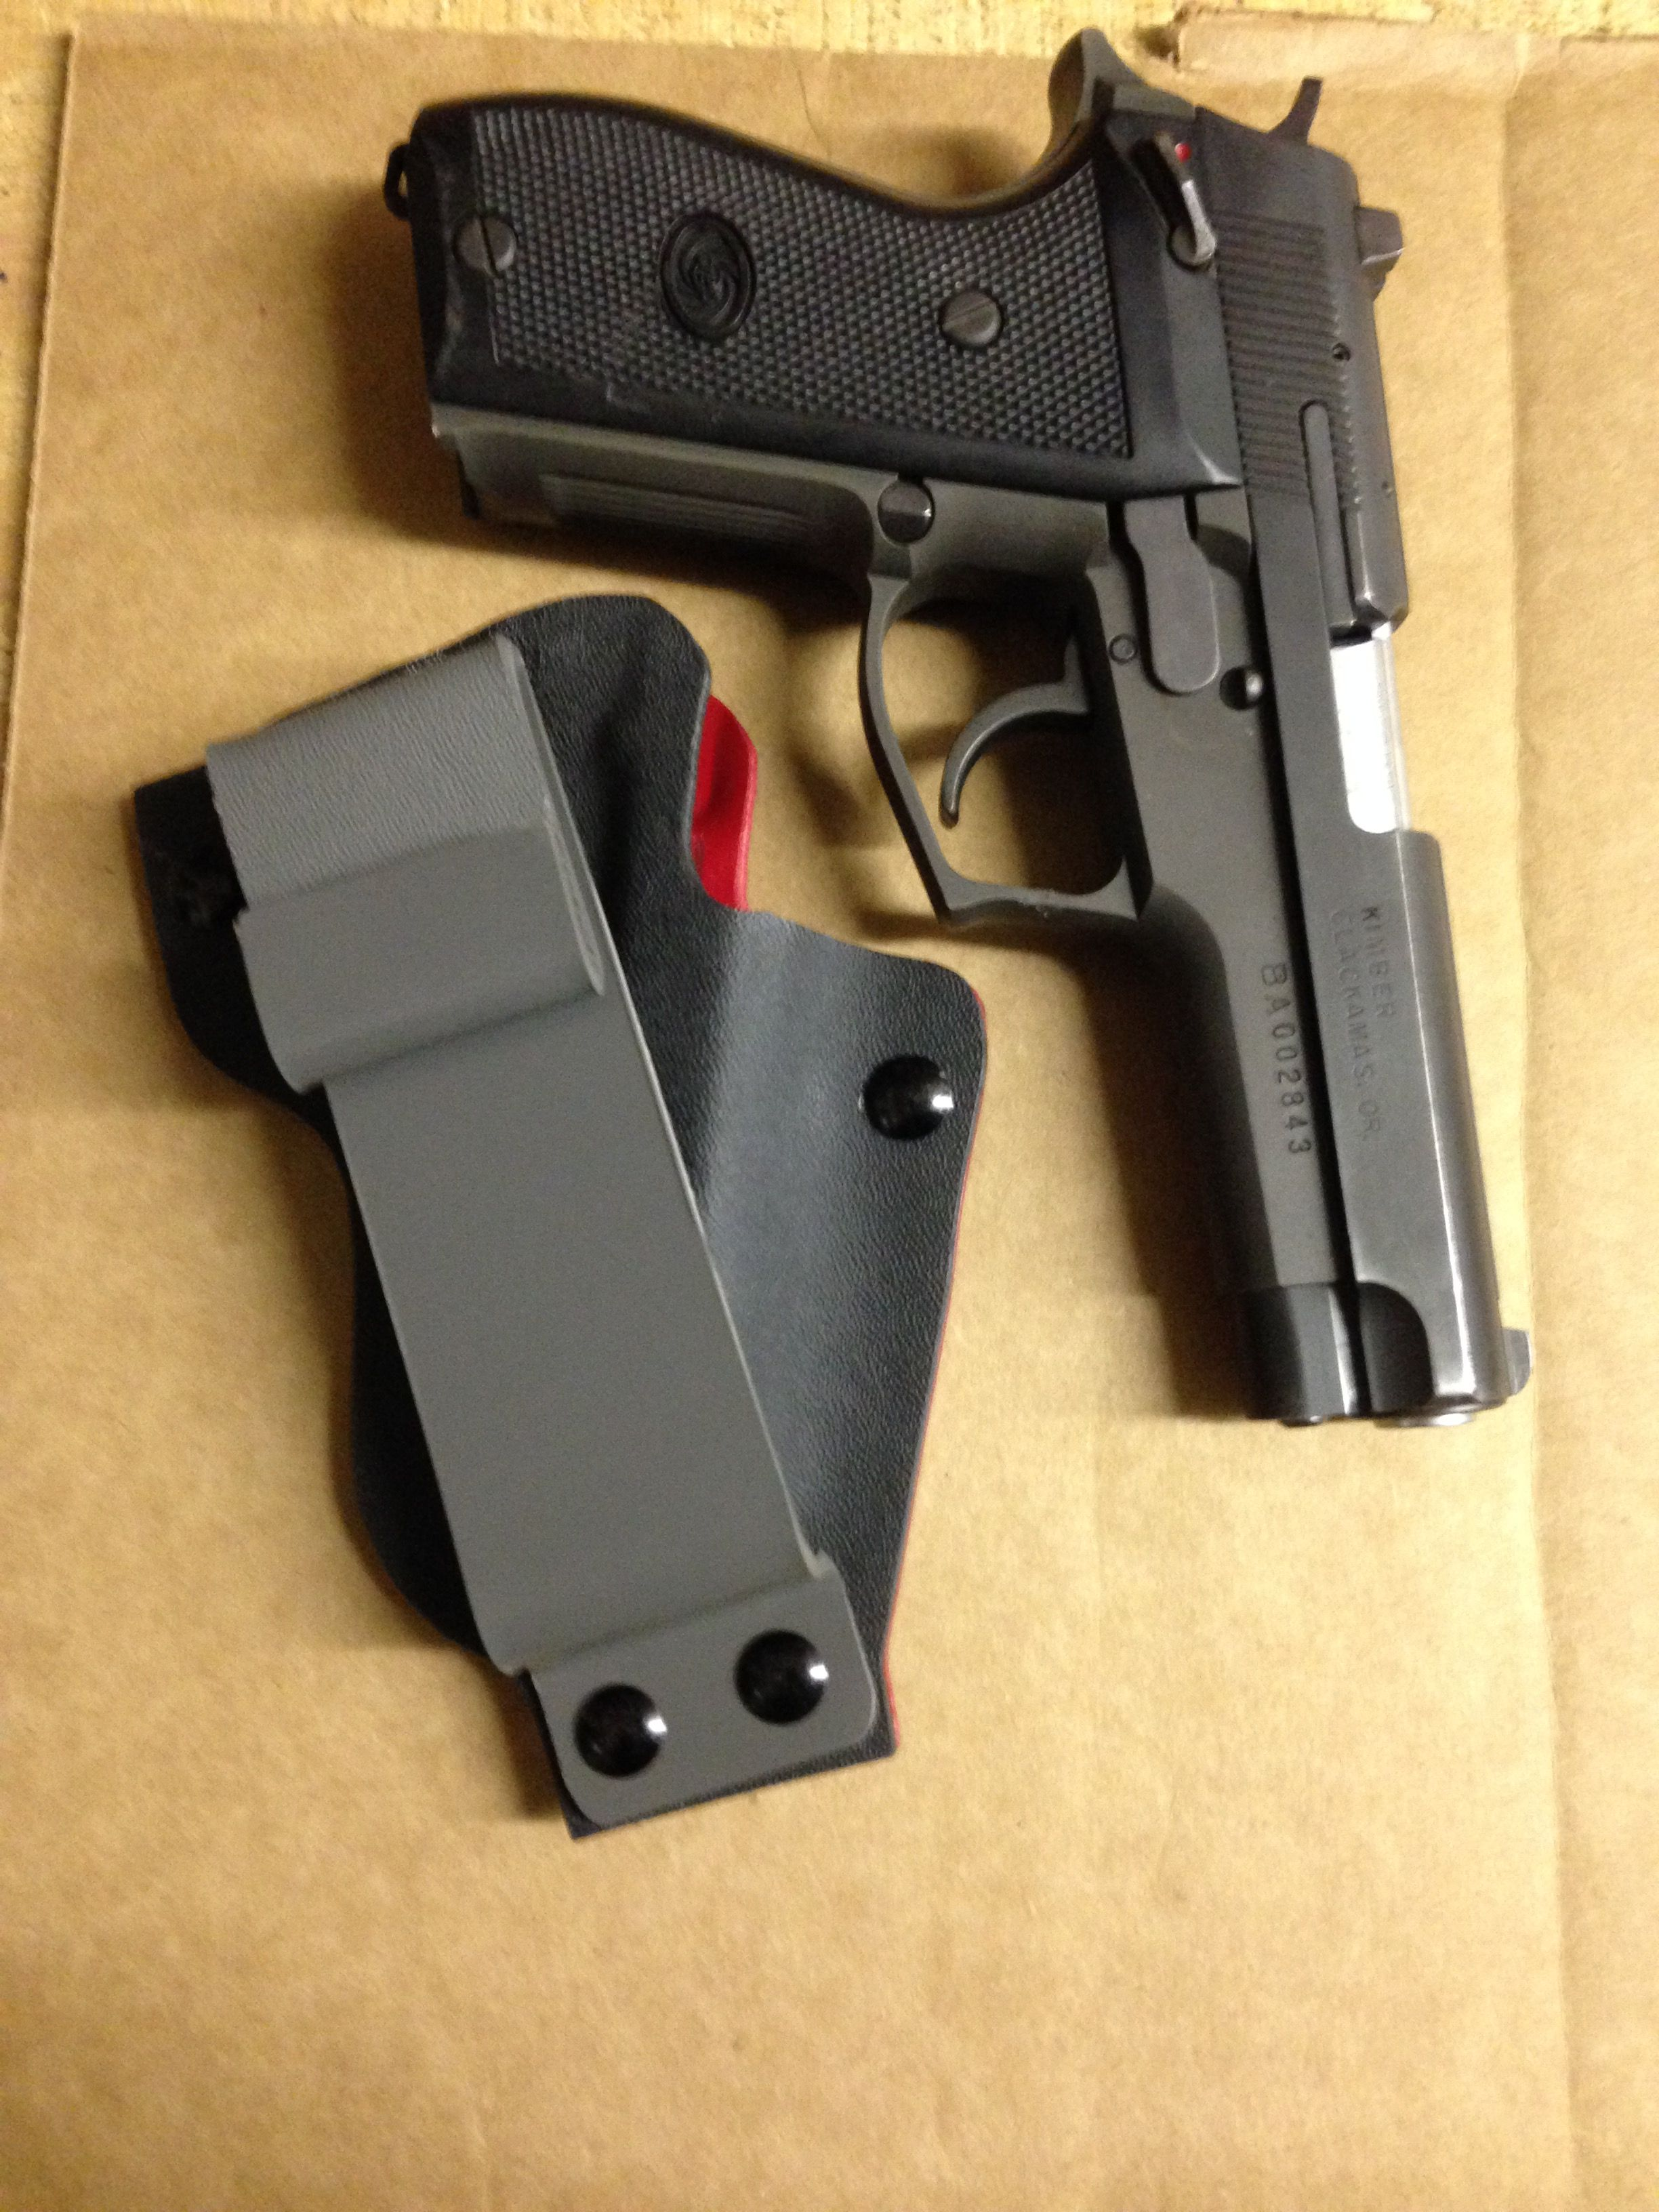 medium resolution of daewoo dp 51 9mm ambidextrous iwb kydex holster i made todayloading that magazine is a